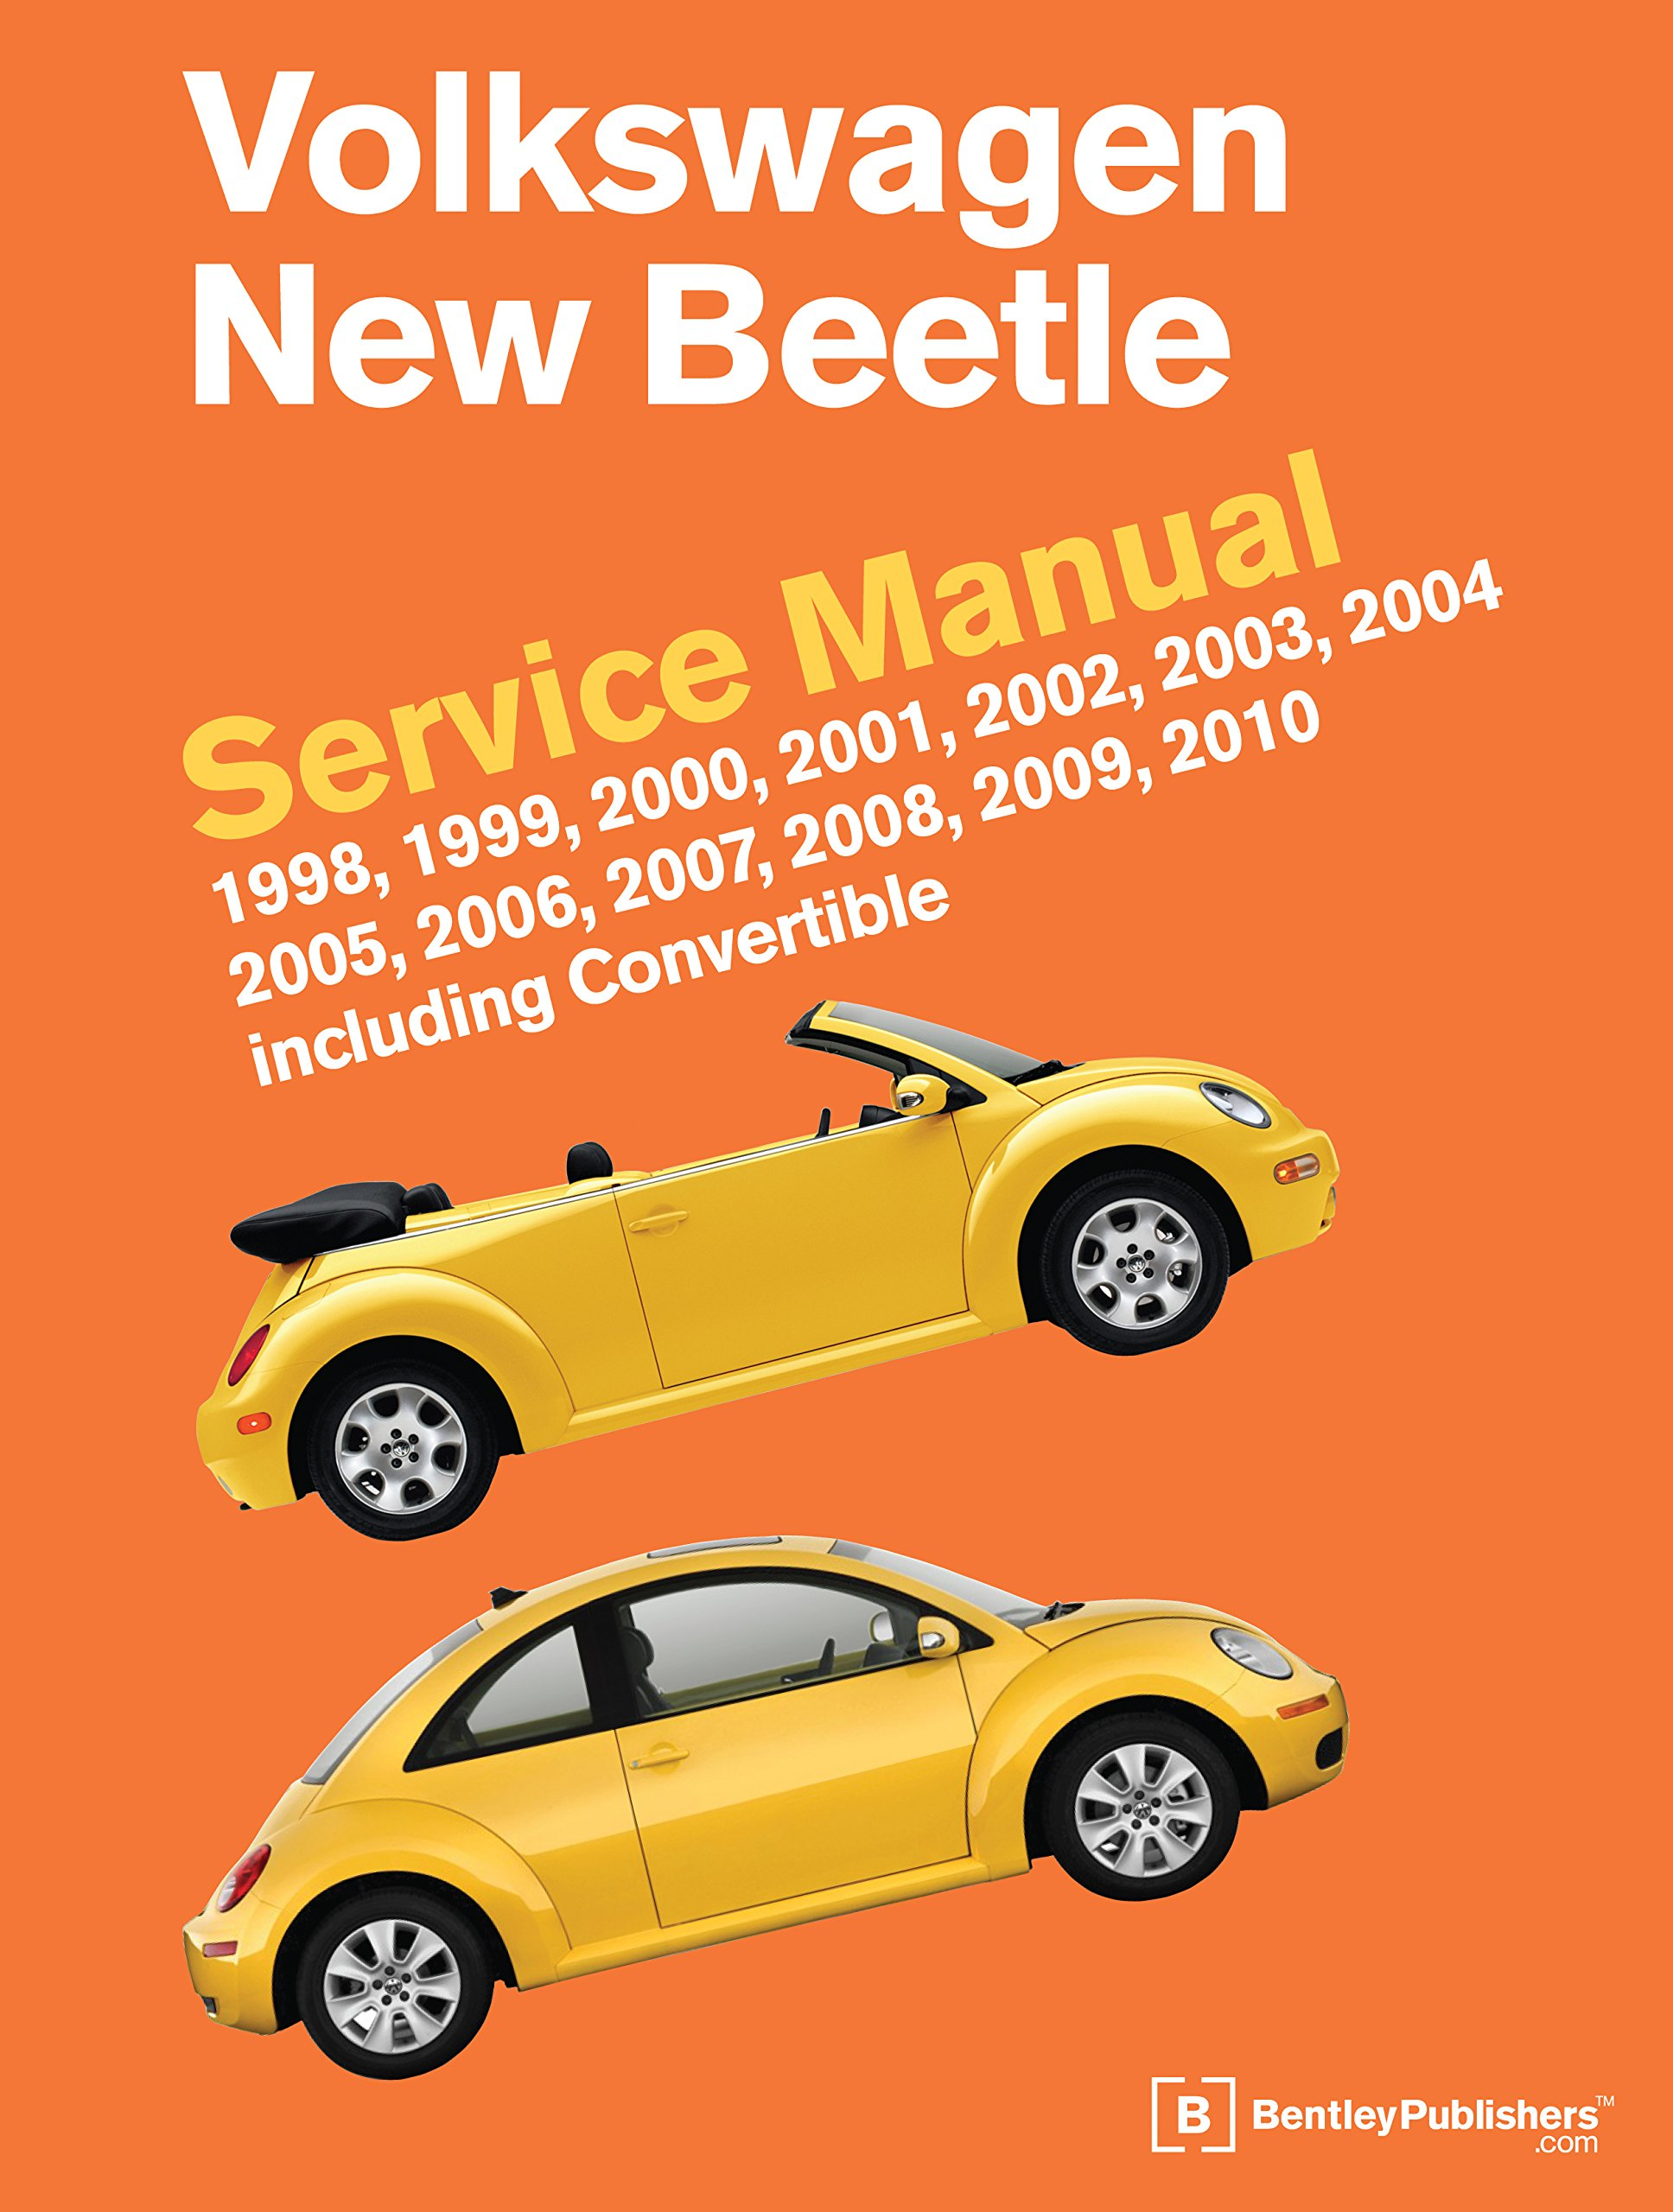 Volkswagen New Beetle Service Manual: 1998, 1999, 2000, 2001, 2002, 2003,  2004, 2005, 2006, 2007, 2008, 2009, 2010: Including Convertible:  Amazon.co.uk: ...